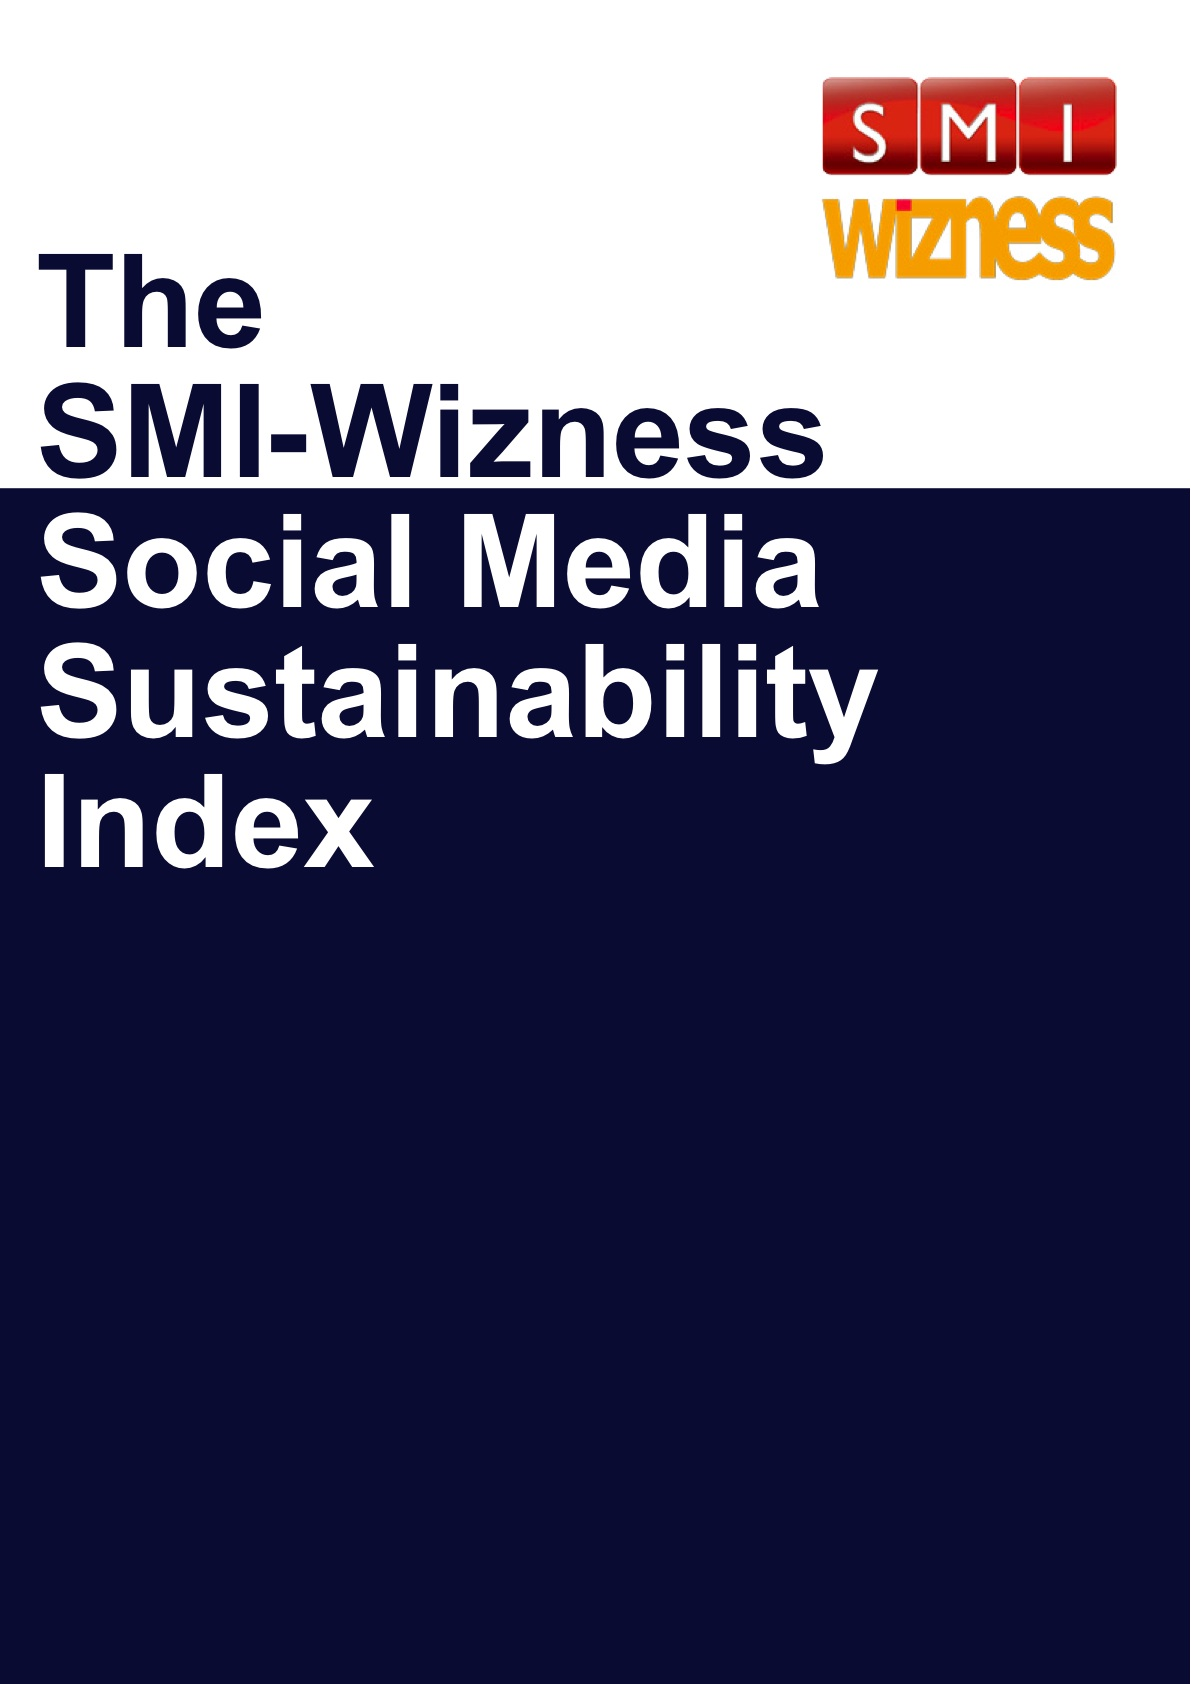 SMI SUSTAINABLE INDEX